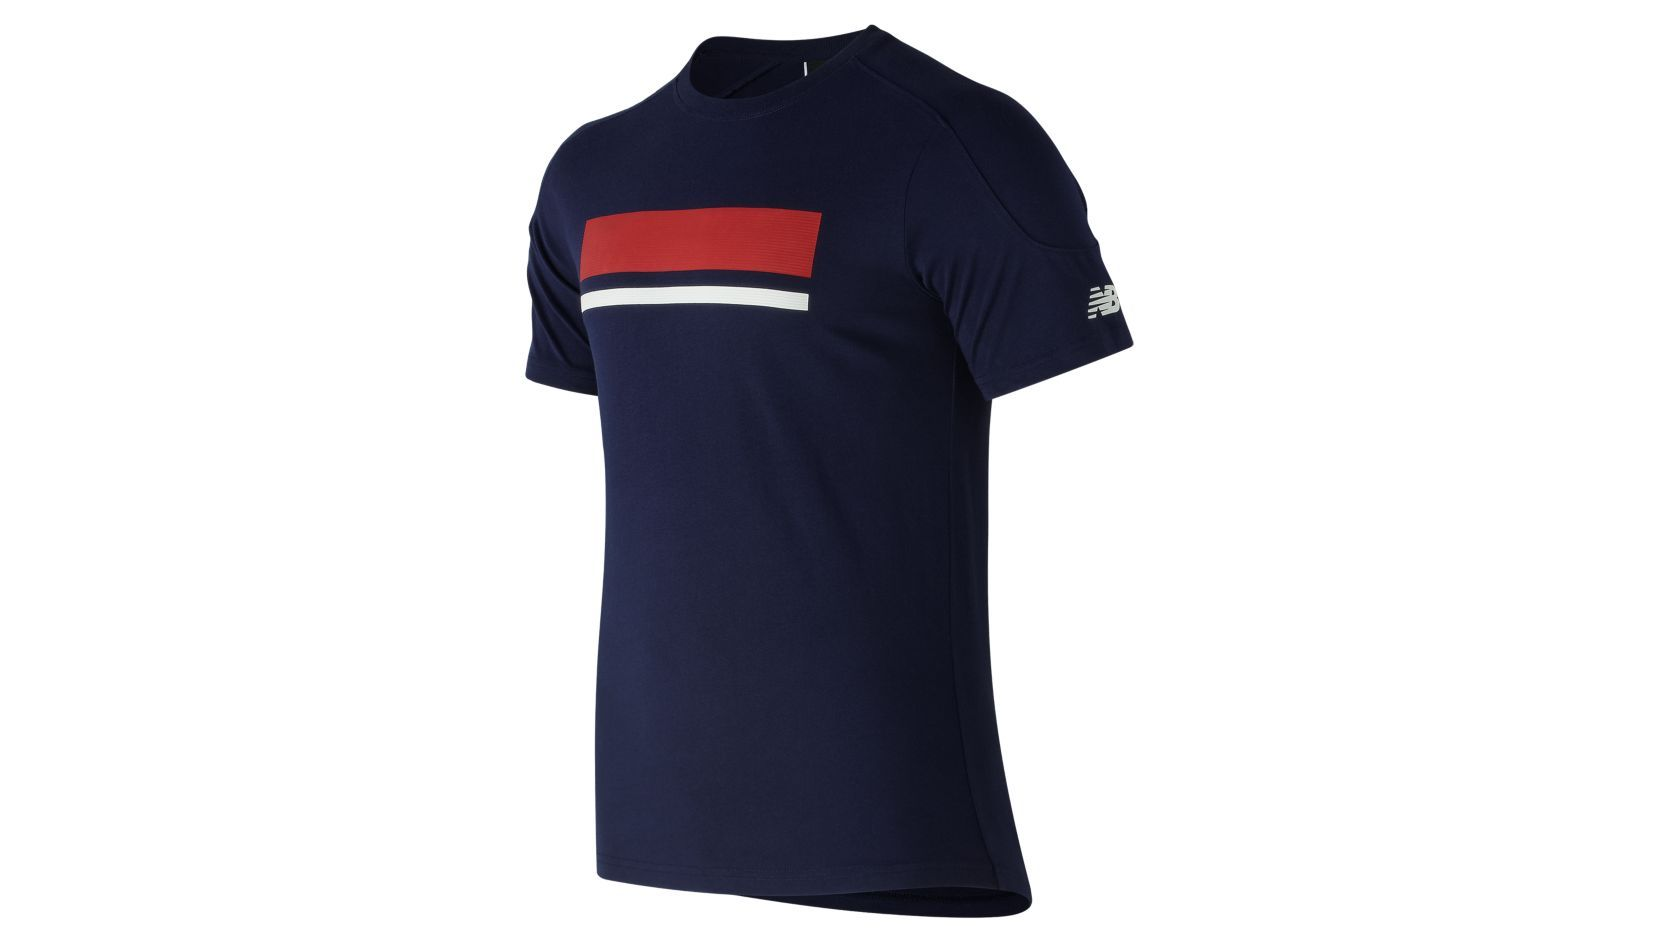 Футболка NB Athletics Evo Tee